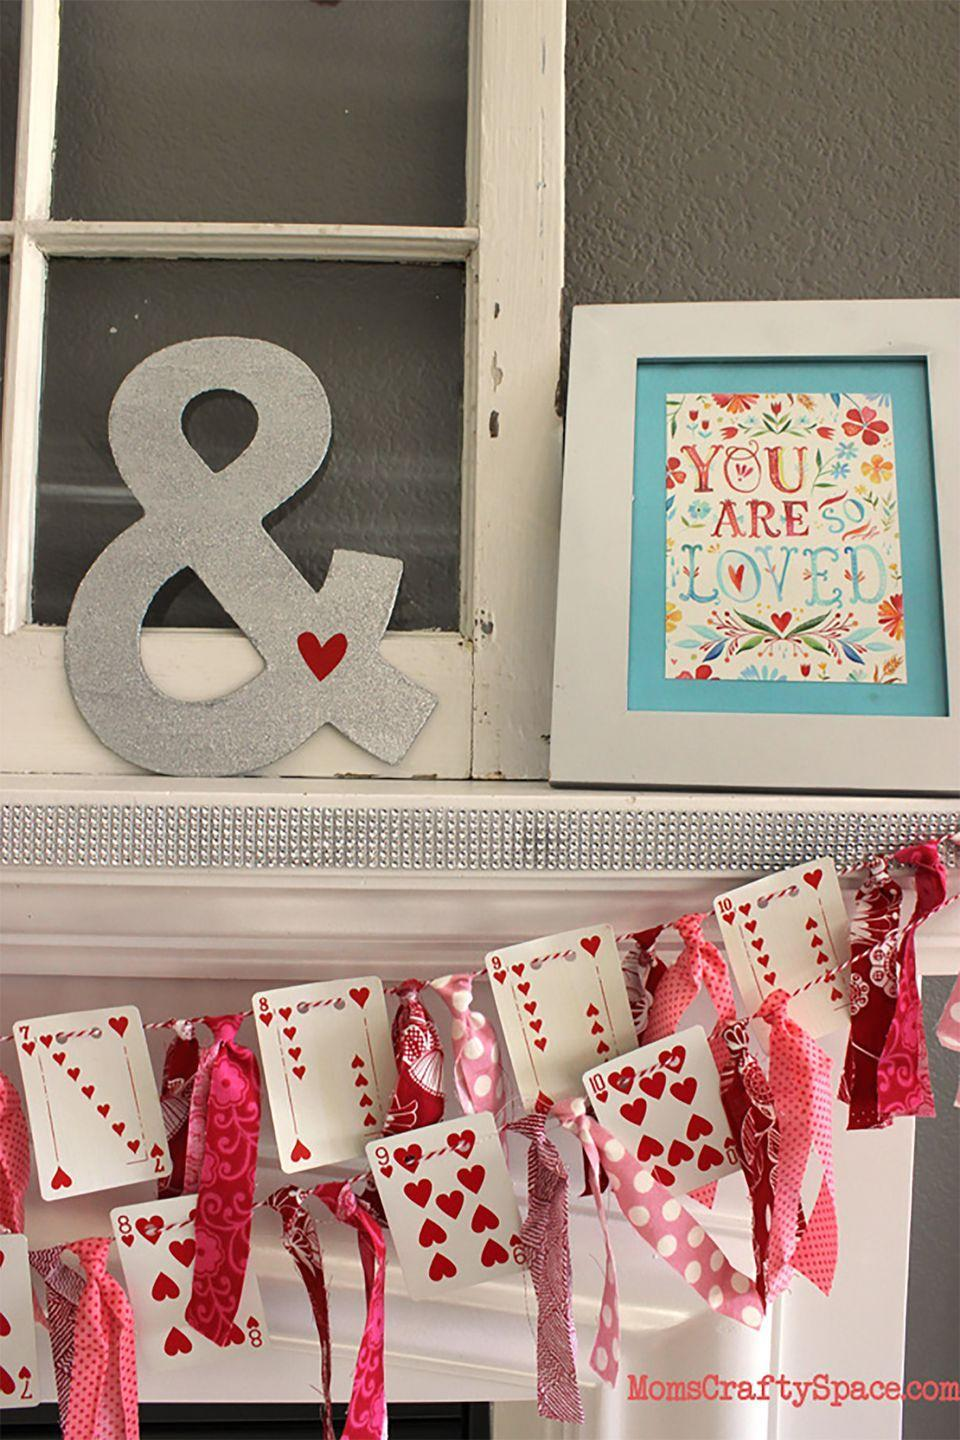 """<p>A deck of cards becomes a lovely decoration for the Queen of Hearts.</p><p><strong>Get the tutorial at <a href=""""https://www.happinessishomemade.net/valentines-day-heart-cards-garland/"""" rel=""""nofollow noopener"""" target=""""_blank"""" data-ylk=""""slk:Happiness Is Homemade"""" class=""""link rapid-noclick-resp"""">Happiness Is Homemade</a>.</strong></p><p><strong><a class=""""link rapid-noclick-resp"""" href=""""https://www.amazon.com/Best-Sellers-Toys-Games-Standard-Playing-Card-Decks/zgbs/toys-and-games/166244011?tag=syn-yahoo-20&ascsubtag=%5Bartid%7C10050.g.2971%5Bsrc%7Cyahoo-us"""" rel=""""nofollow noopener"""" target=""""_blank"""" data-ylk=""""slk:SHOP PLAYING CARDS"""">SHOP PLAYING CARDS</a><br></strong></p>"""